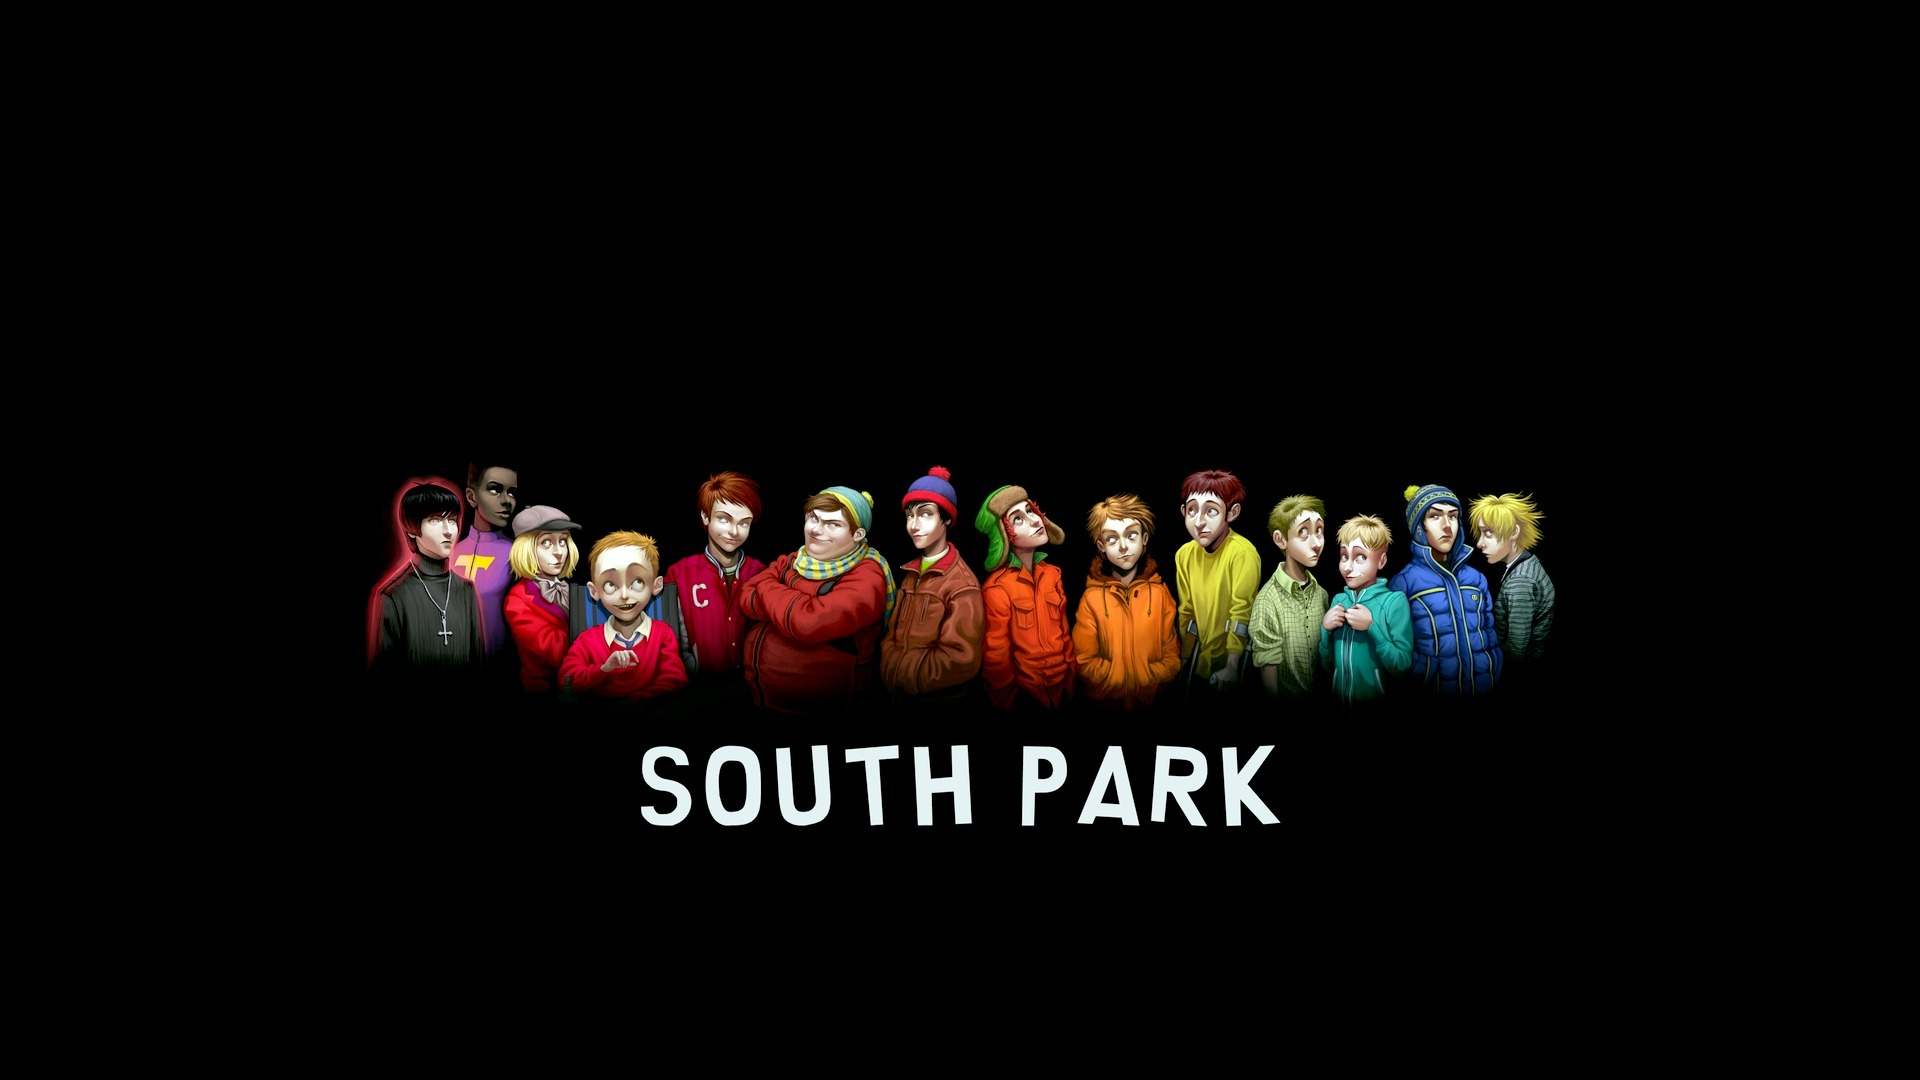 South Park Hd Wallpapers Pictures Images